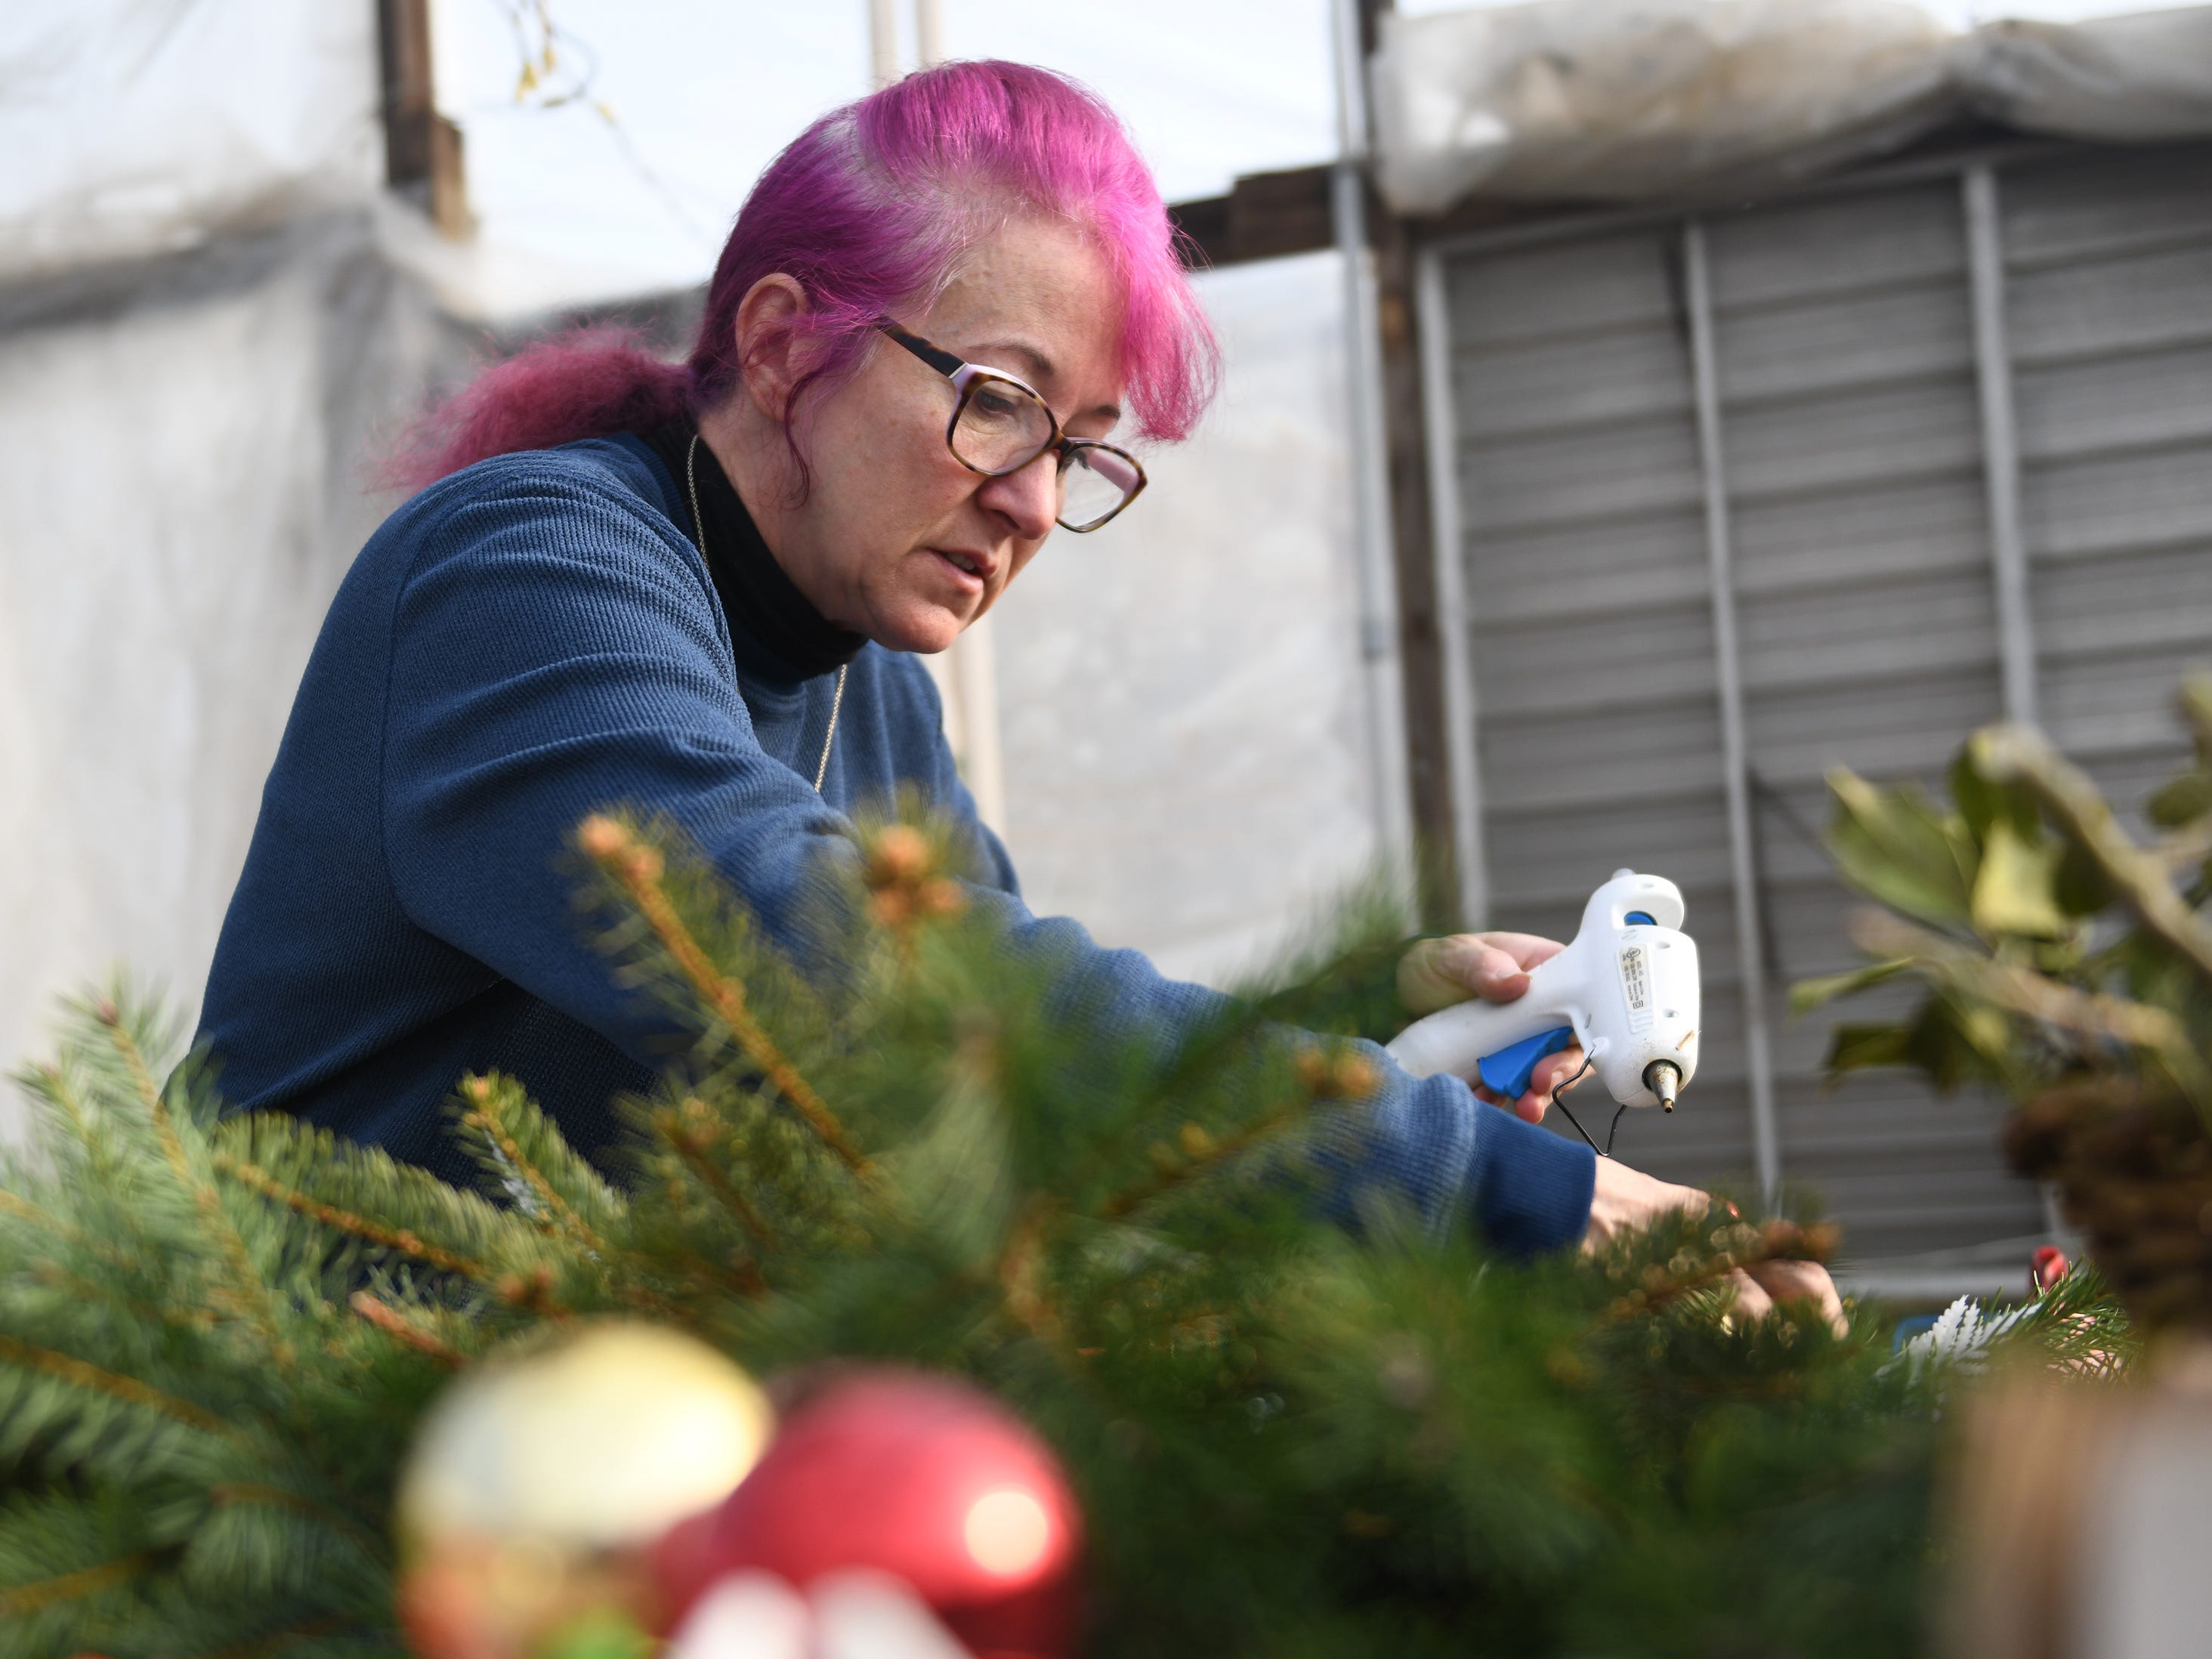 Selina Rose of Newfield decorates a Christmas wreath while working at Huffman Farms in Vineland on Monday, December 10, 2018.